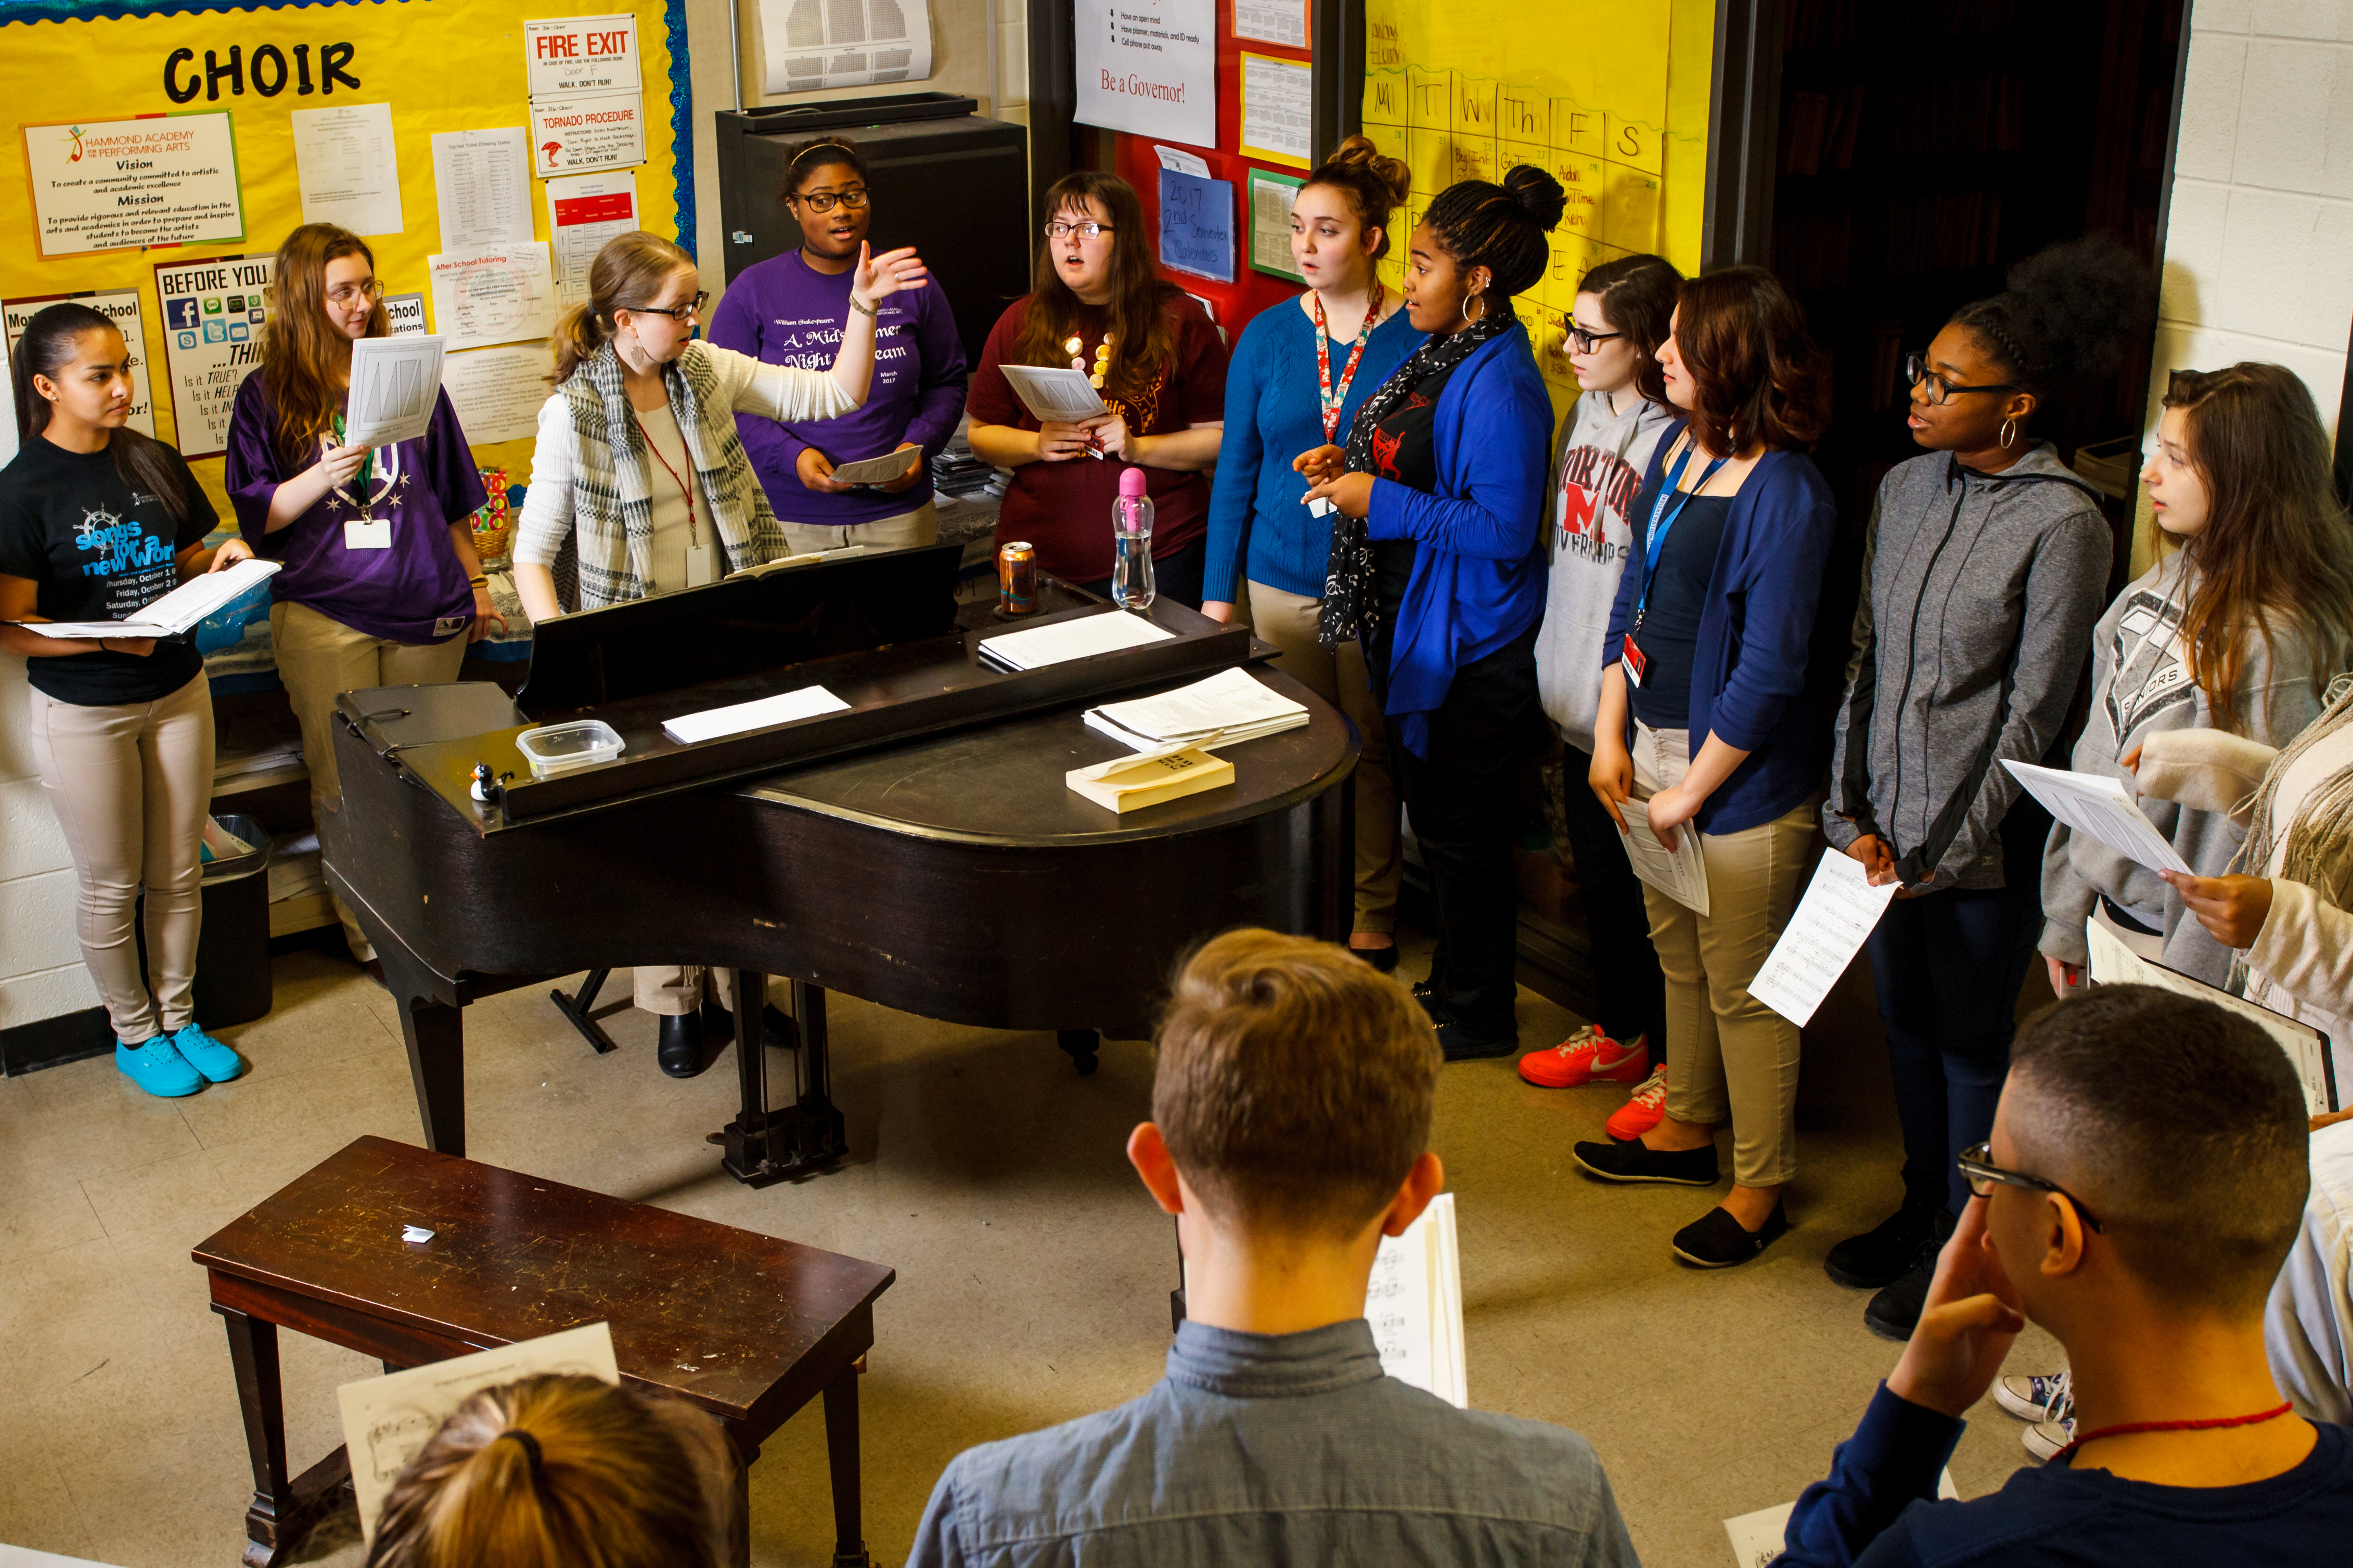 Piano and choir teacher Connie Pruitt at the Hammond Academy for Performing Arts at Morton High School in Hammond, Ind., Monday, March 20, 2017.